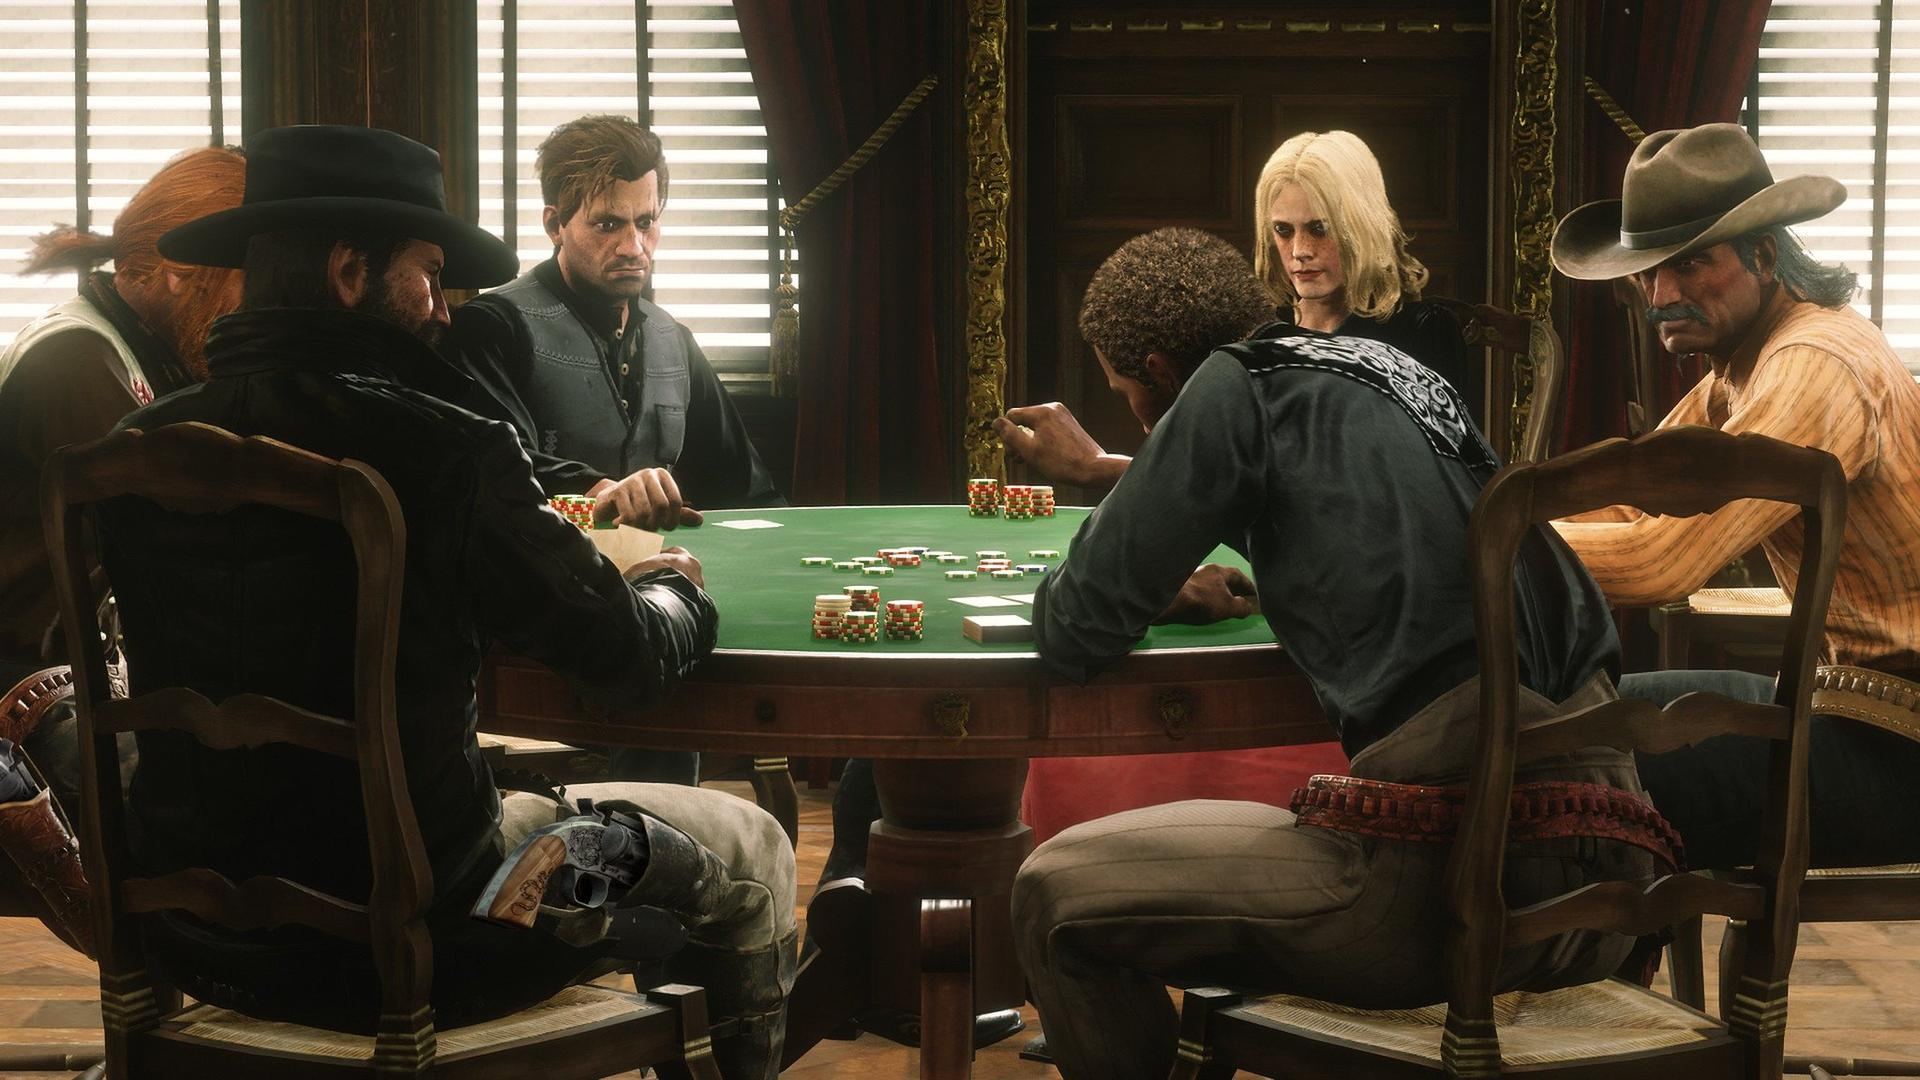 Tips and Tricks to Become a Professional Online Poker Player